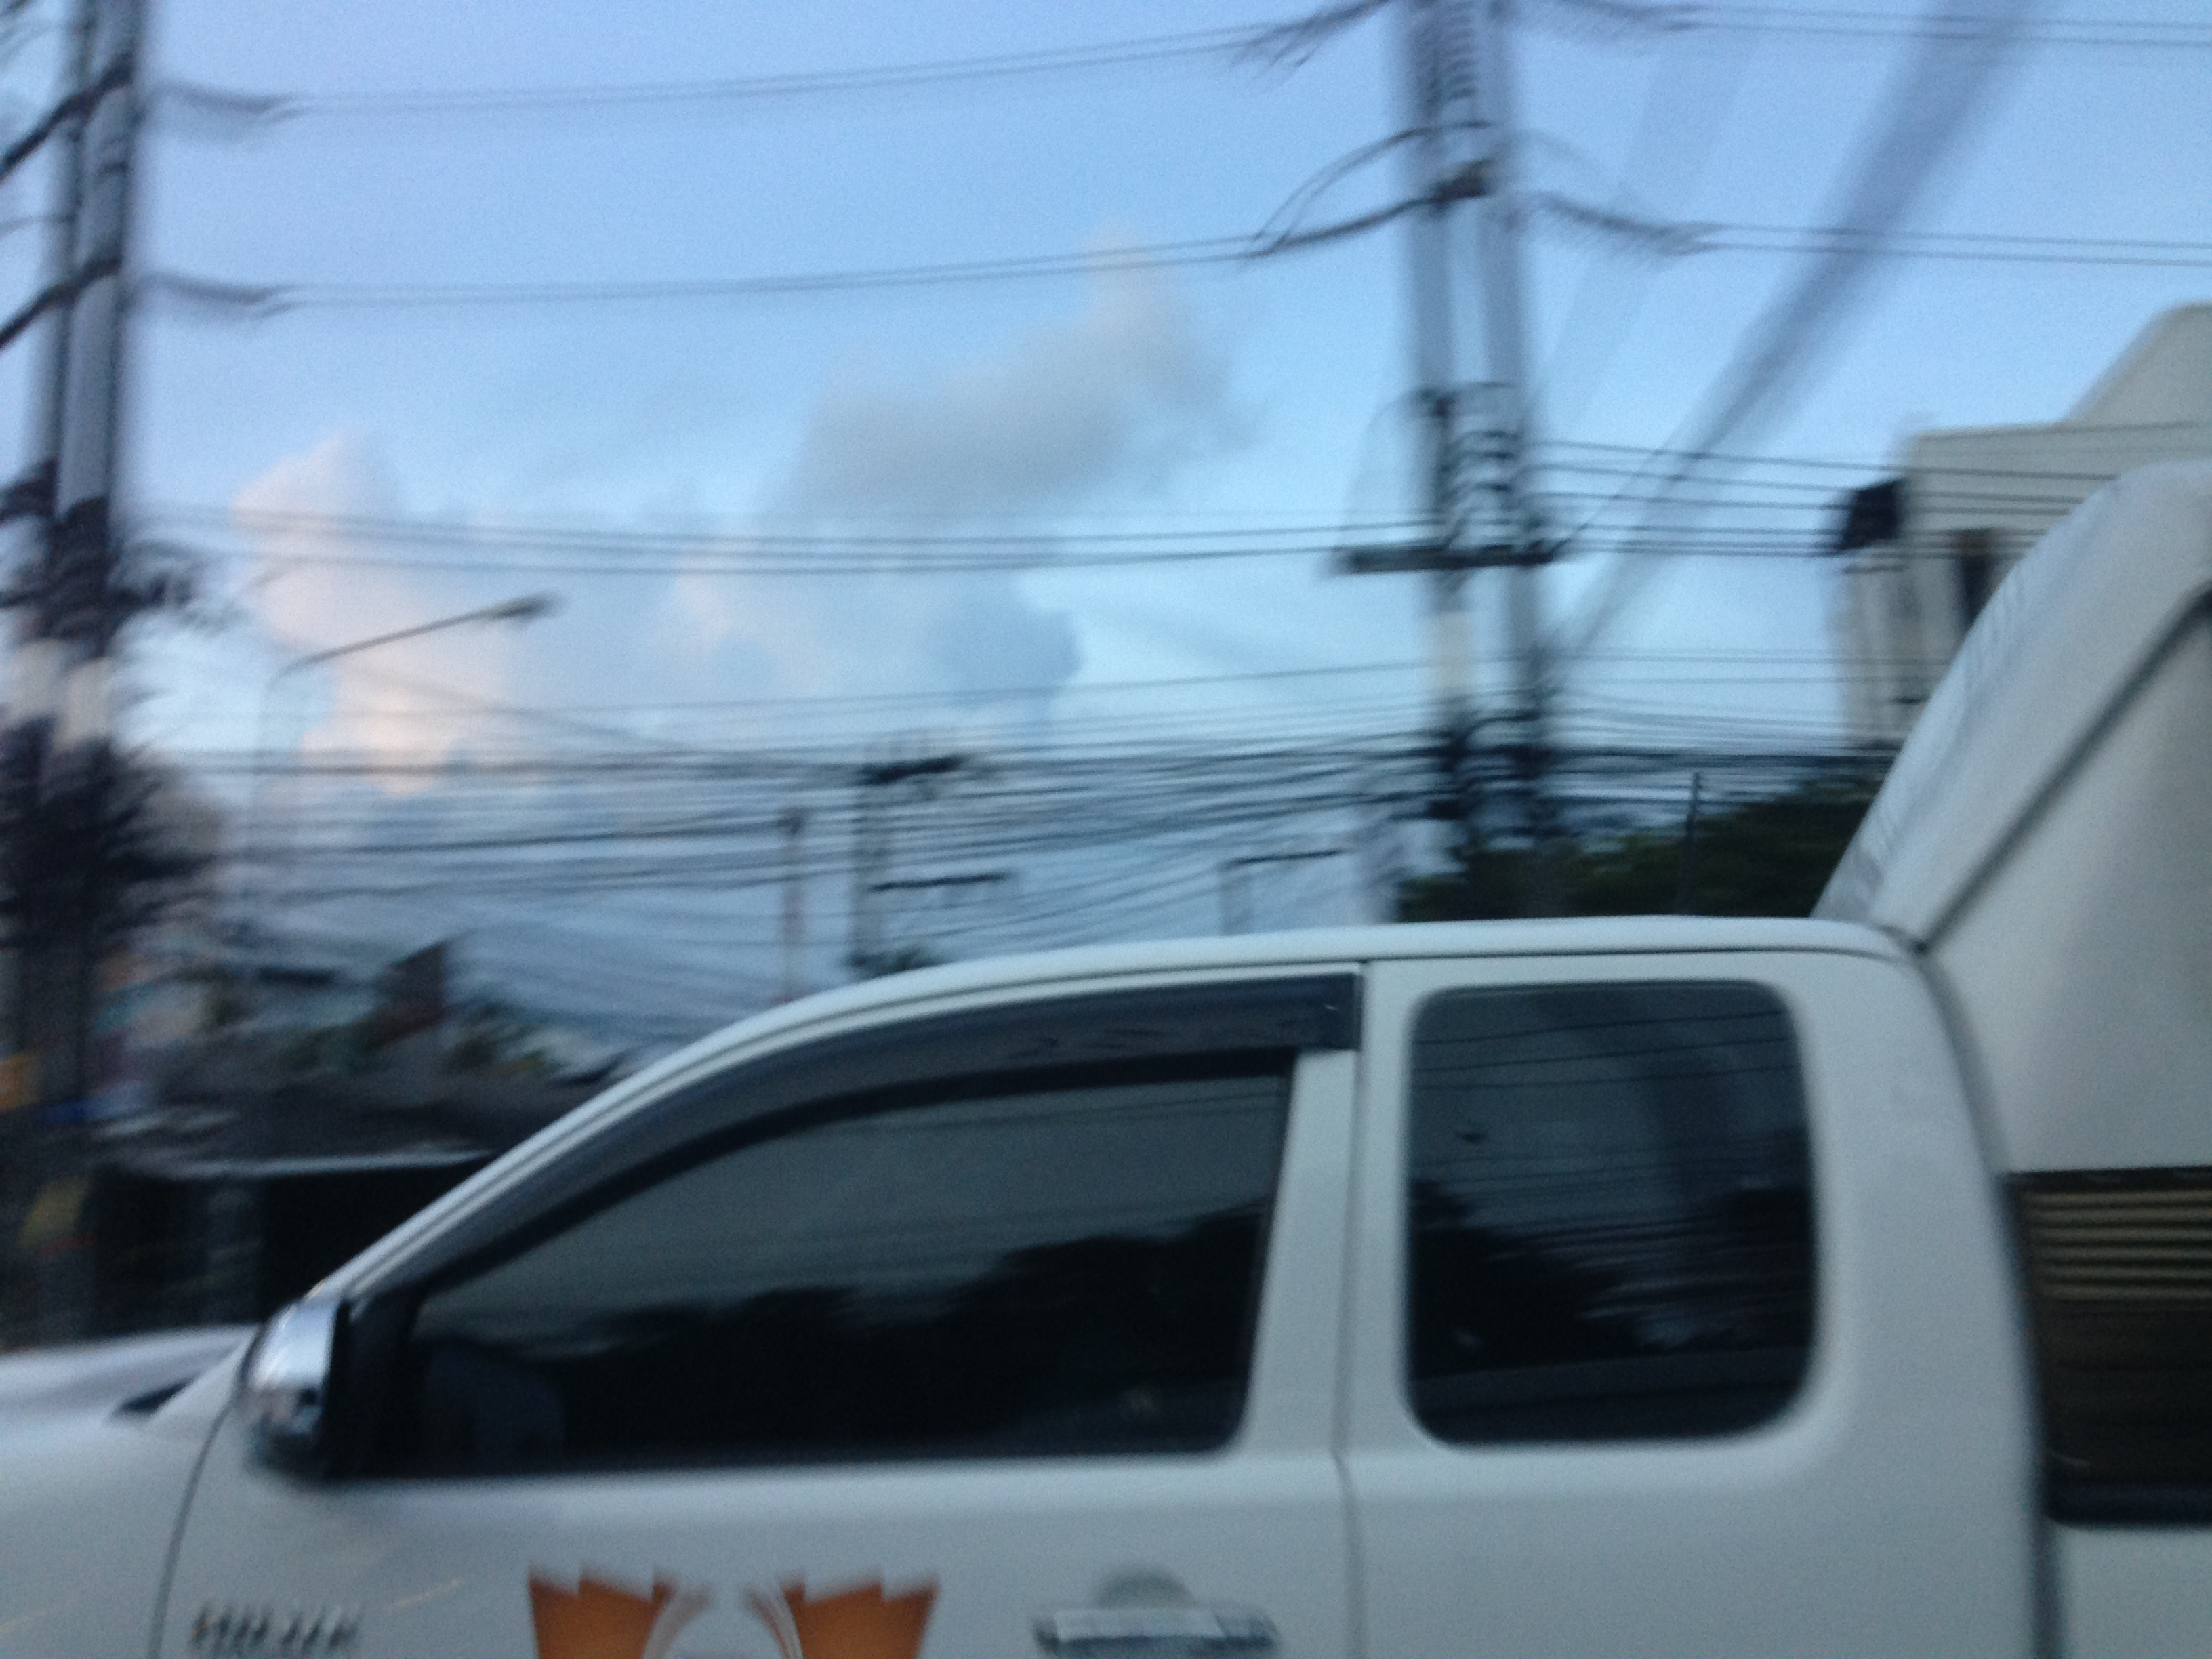 The front part of a white truck. Clouds and electricity poles and wires in the background.